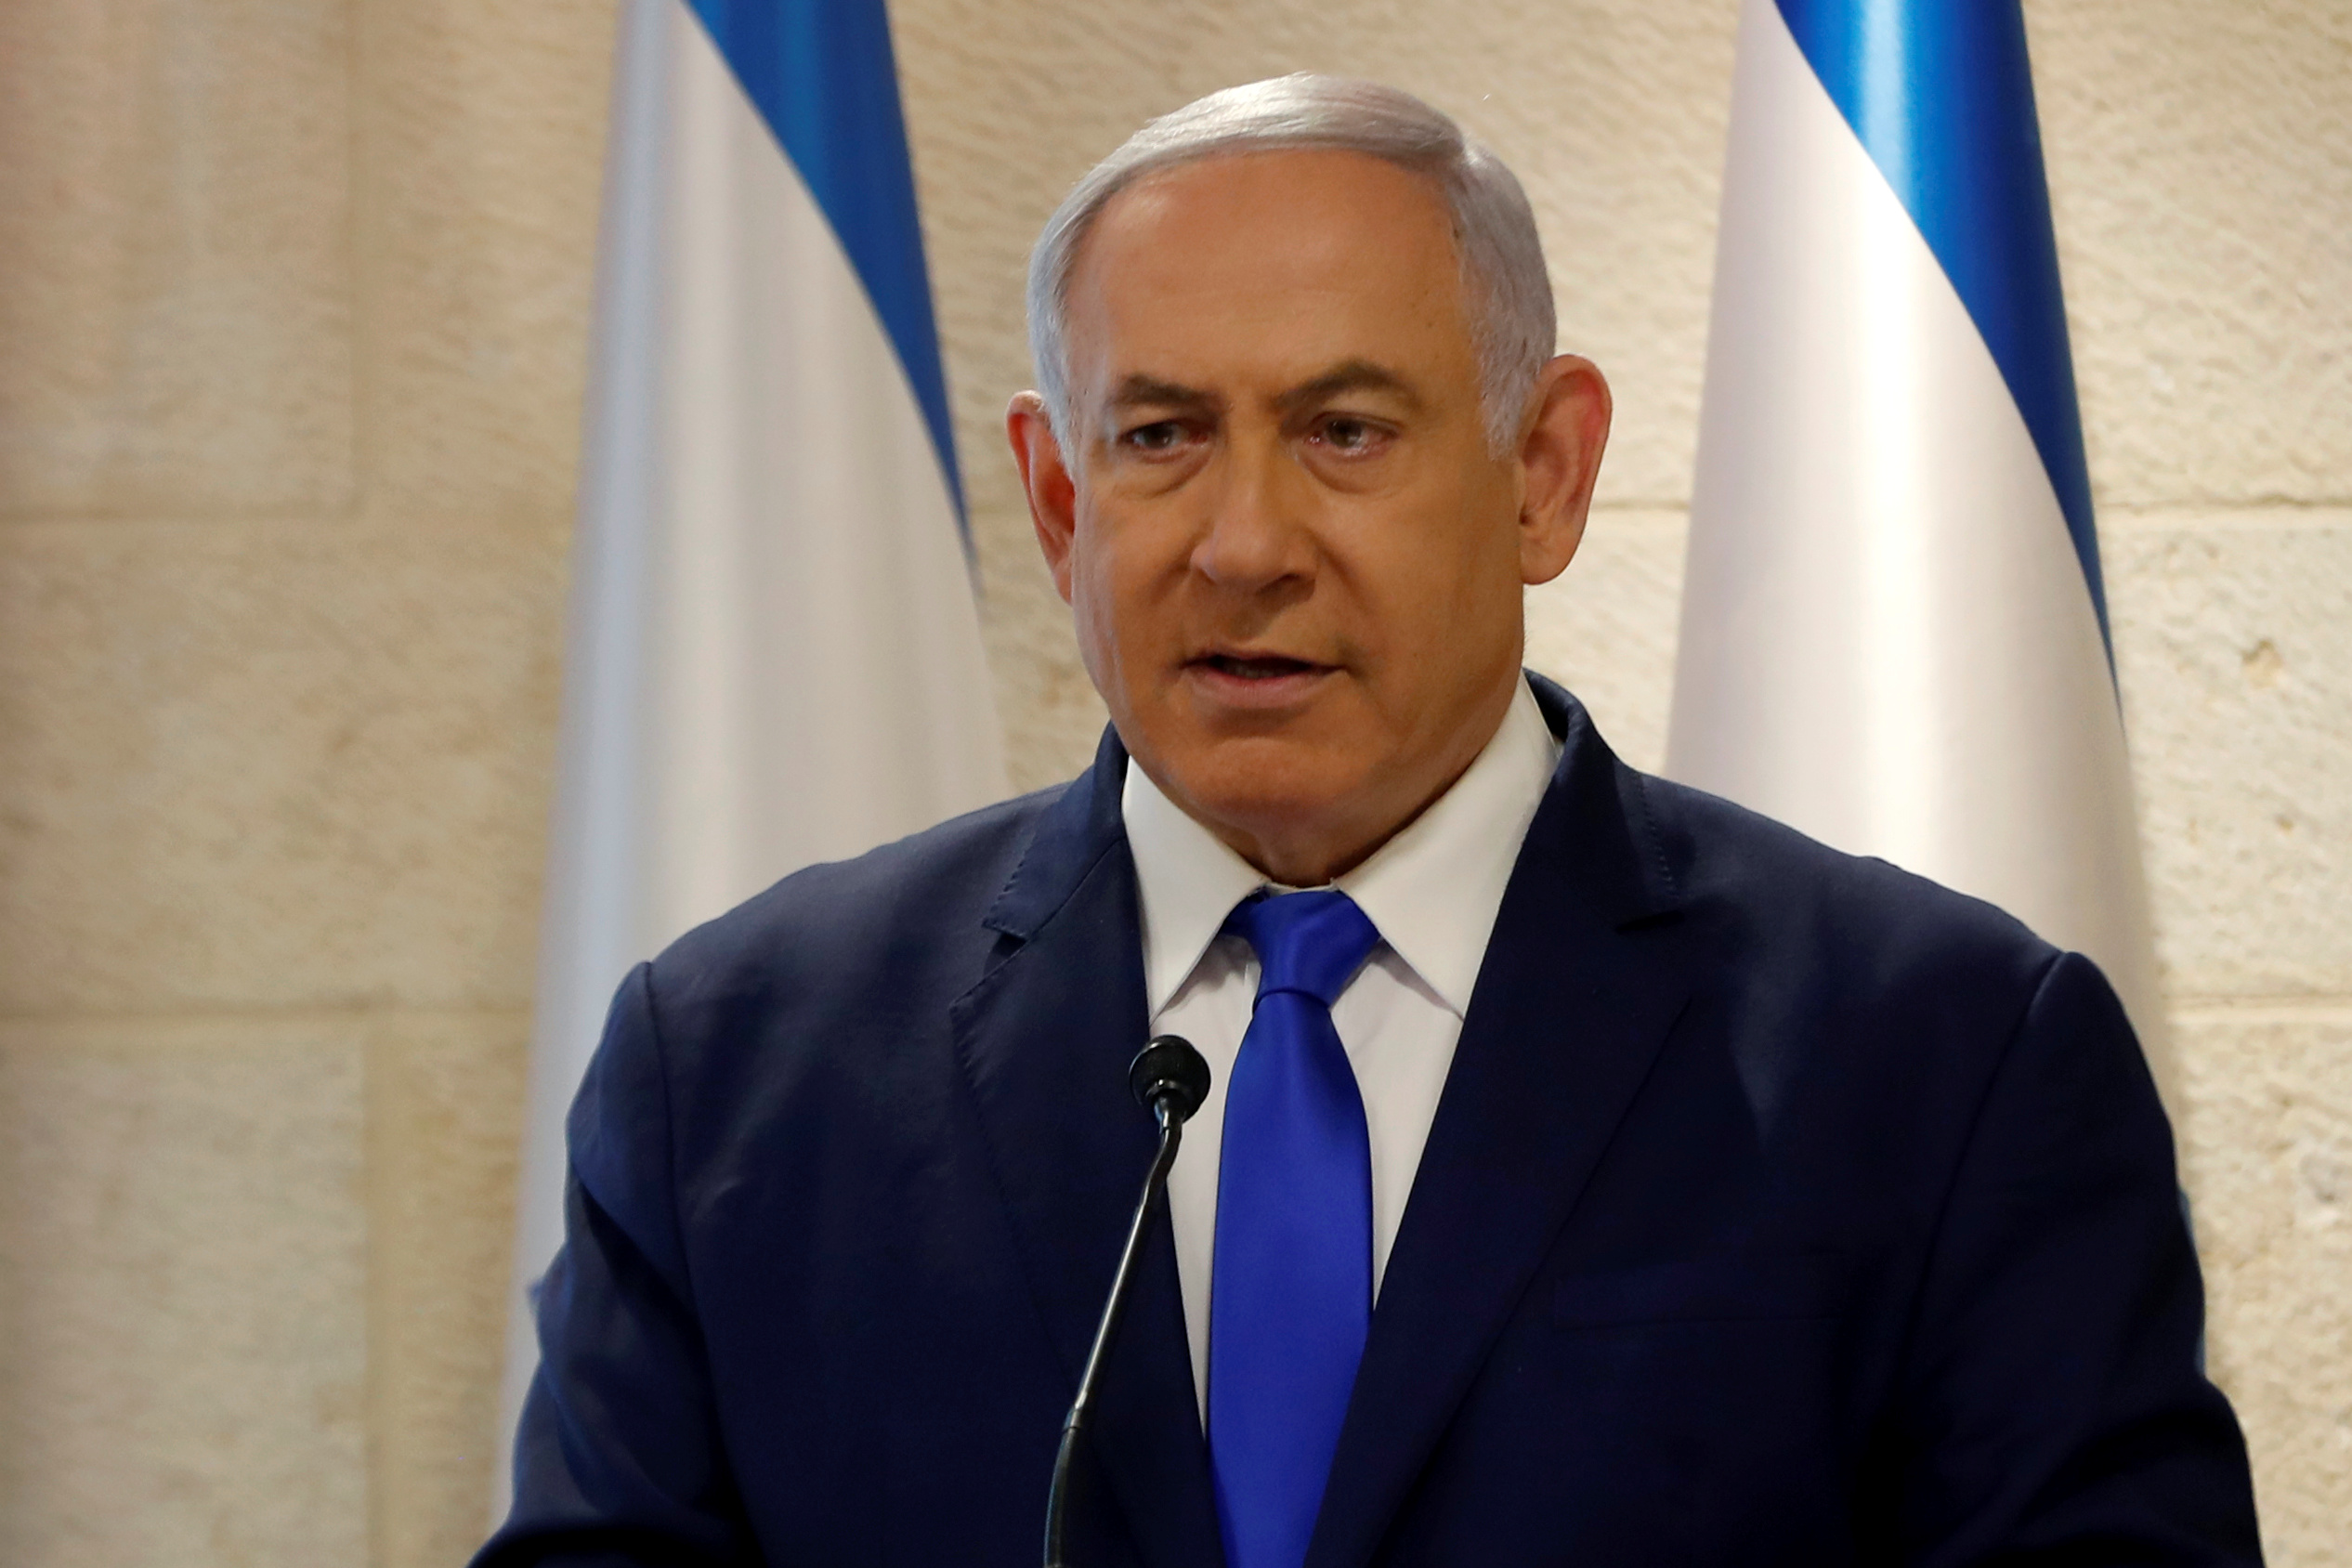 Israeli Prime Minister Benjamin Netanyahu speaks at a news conference in Jerusalem September 9, 2019. REUTERS/Ronen Zvulun